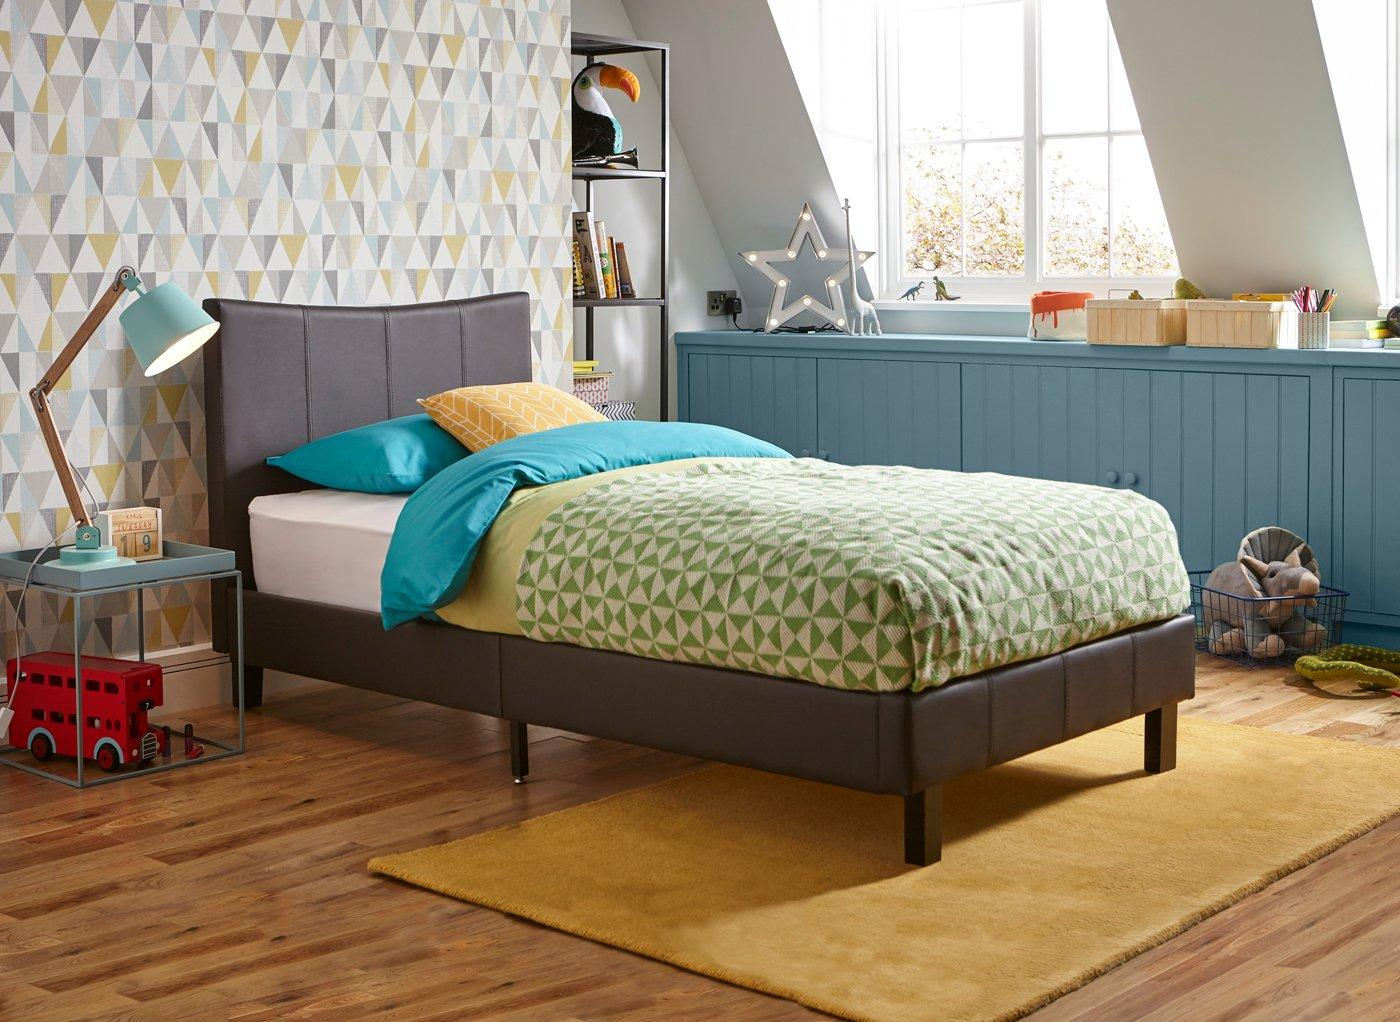 Jakarta Faux Leather Bed Frame (£199)